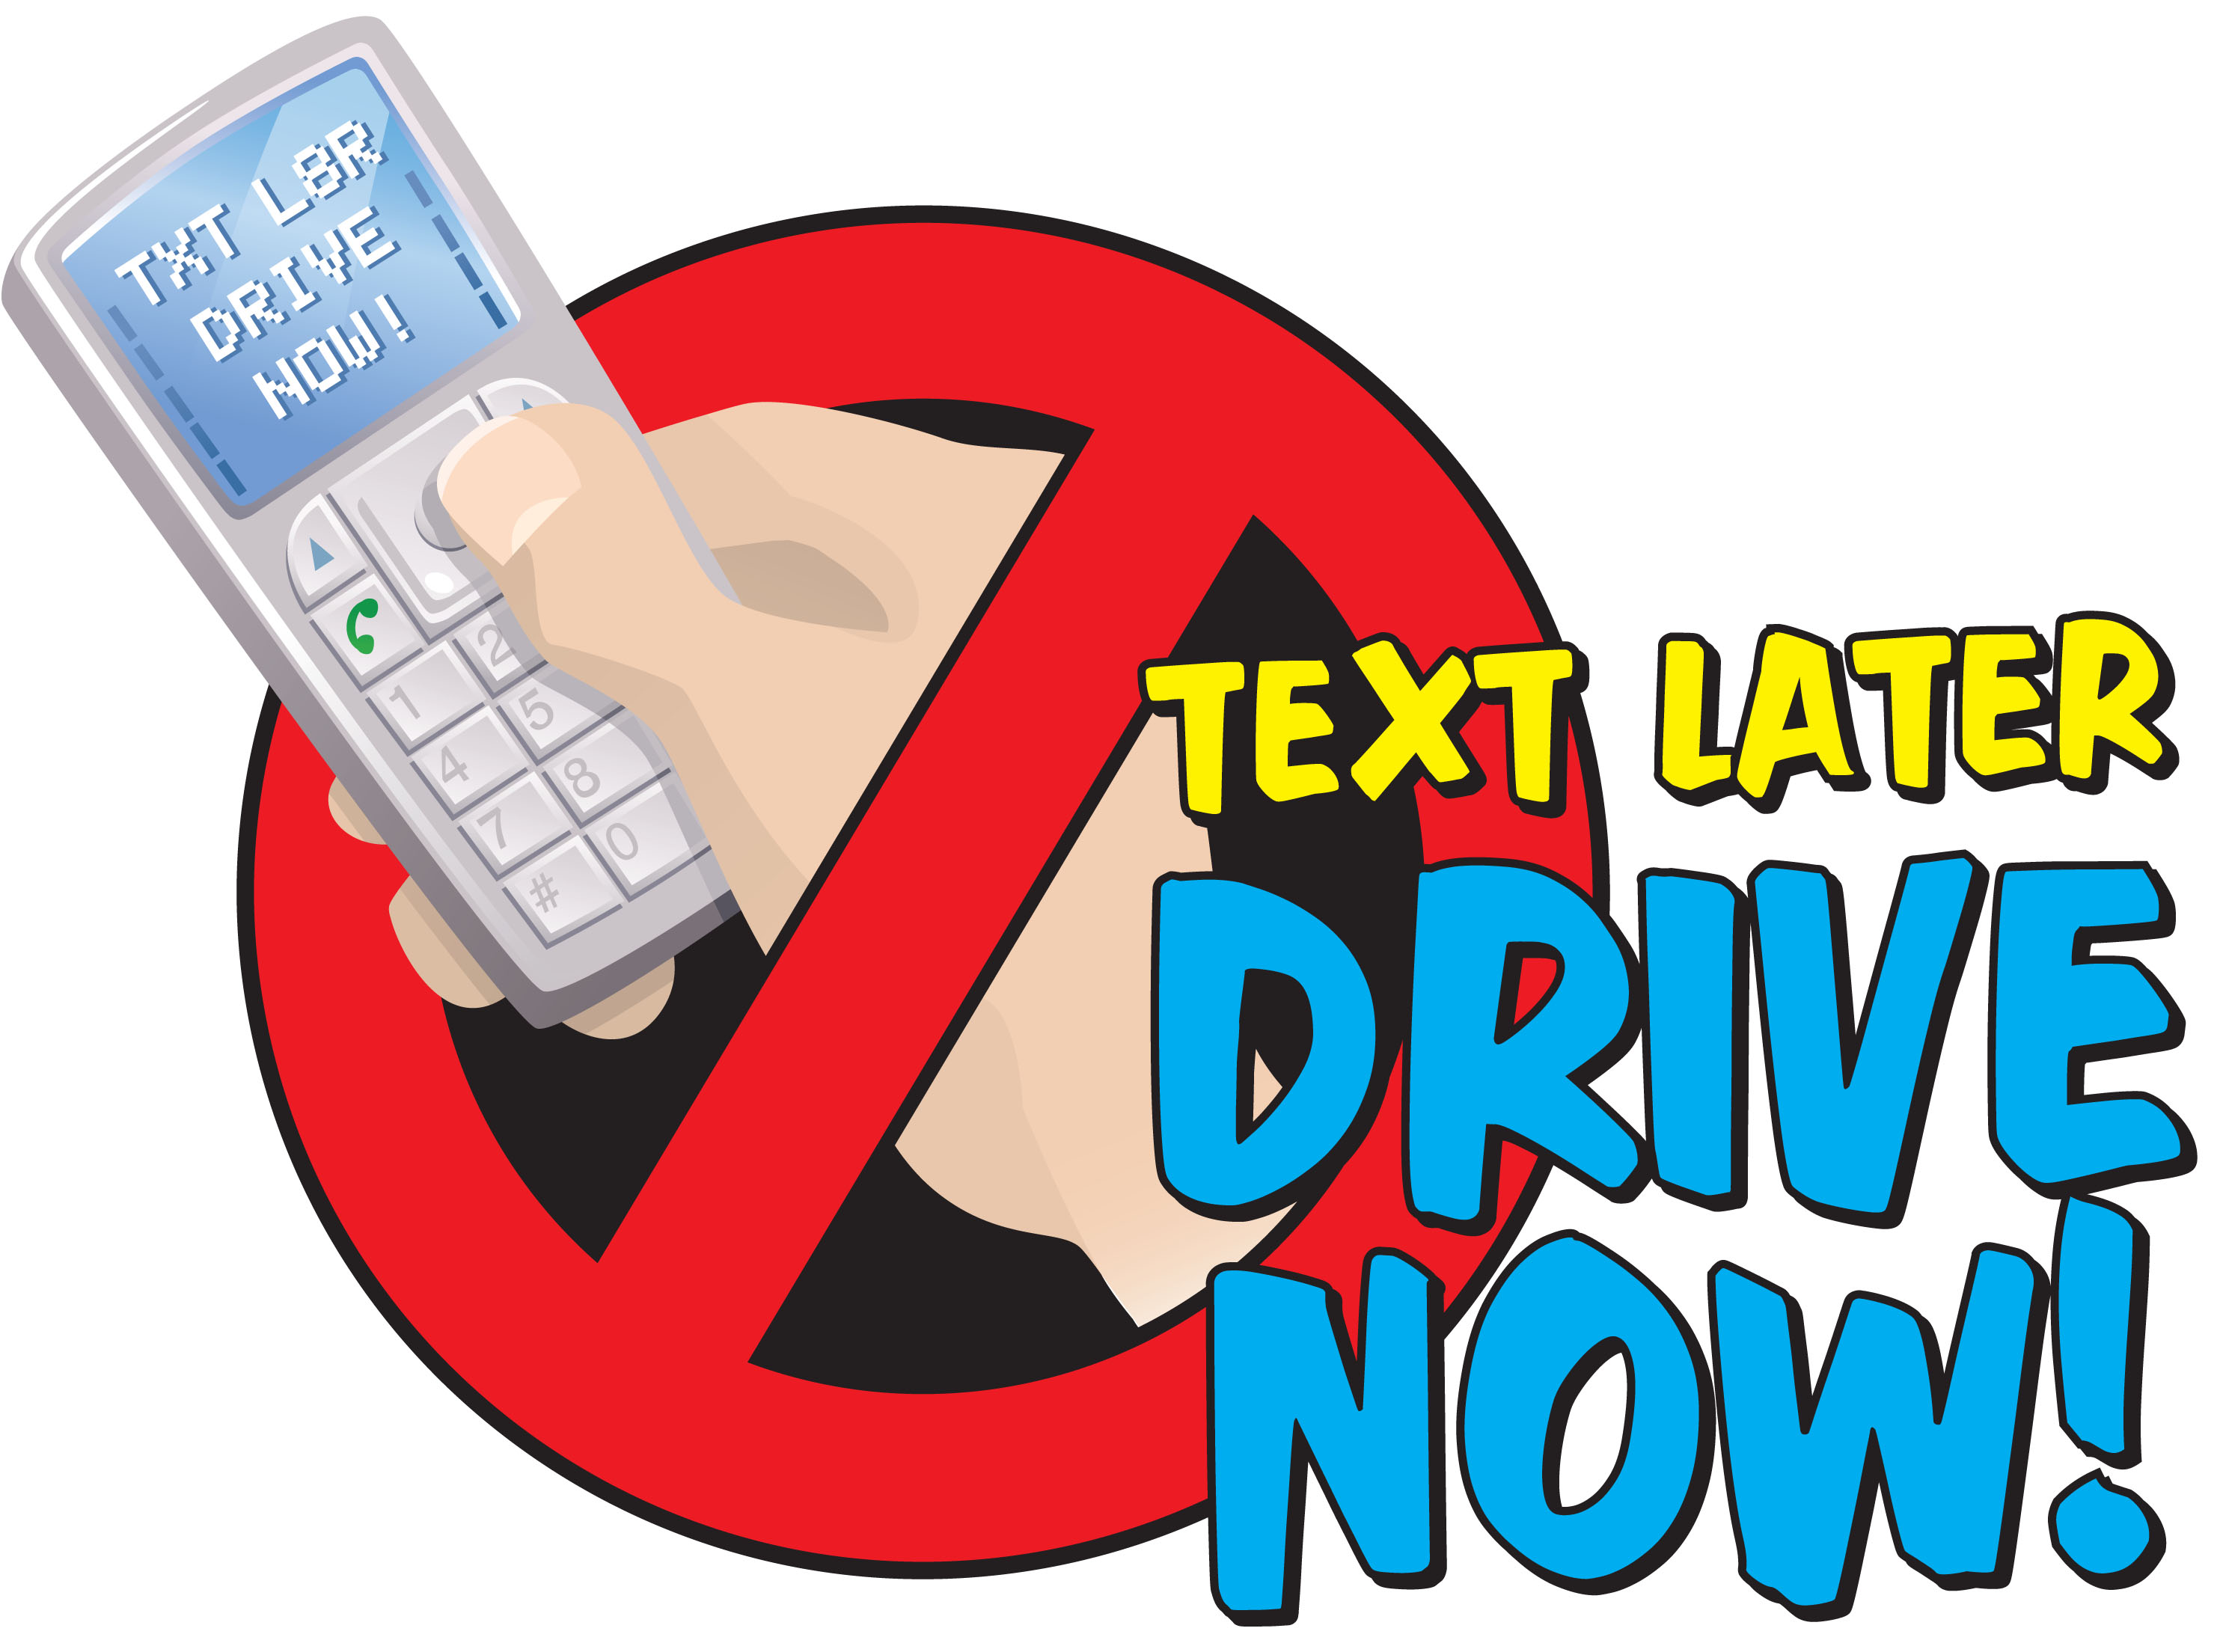 No texting while driving clipart.